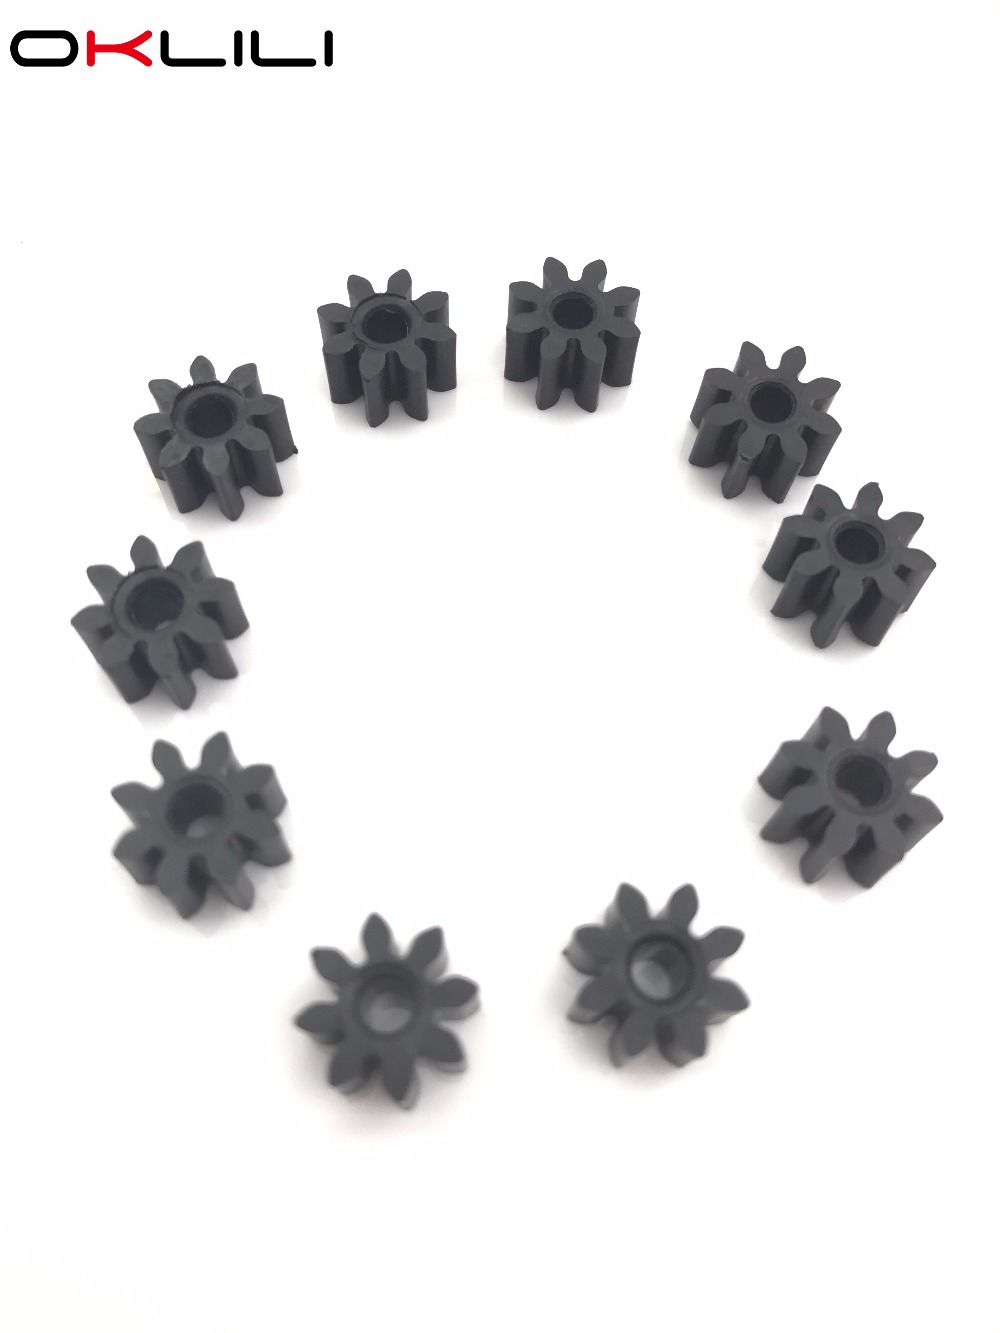 10X Feed Feeding Delivery Roller Gear 8T for HP 920 6000 6500 6500A 7000 7500 7500A B010 B010A B010b B109 B109a B109c B109q B110 920 hp920 920xl original printhead for hp 920 print head for hp officejet 6000 7000 6500 6500a 7500 7500a printer head